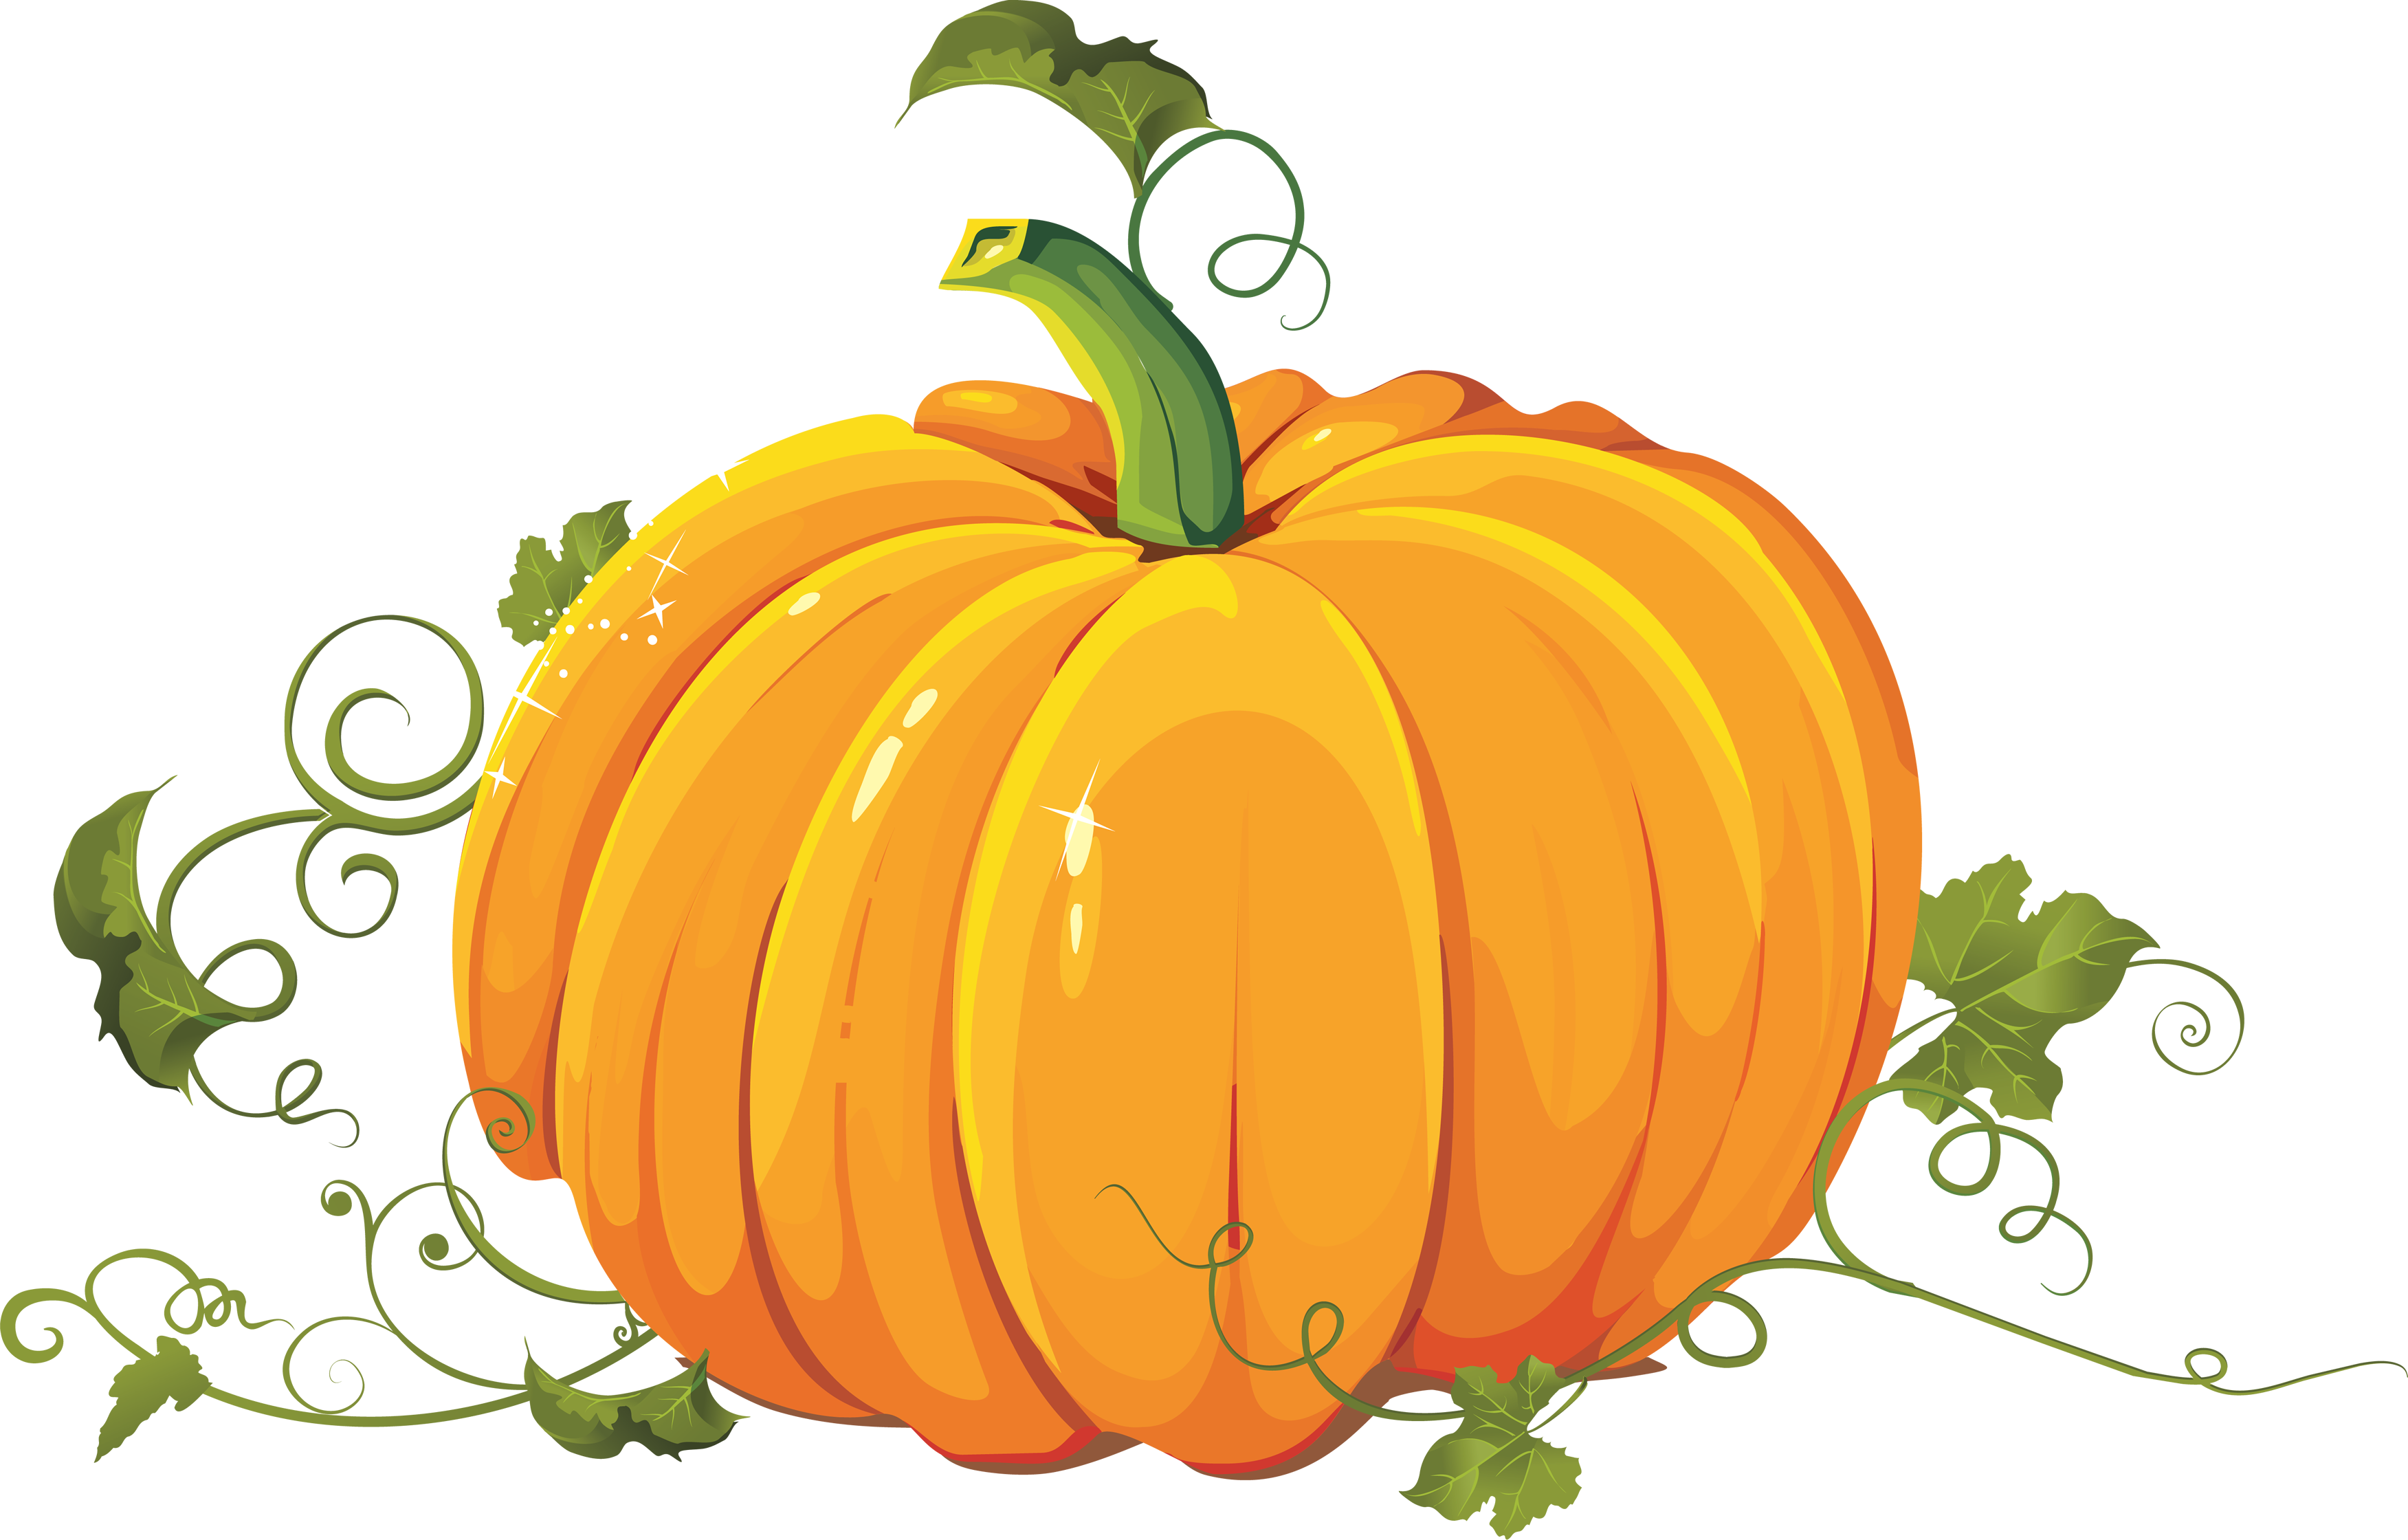 Clipart pumpkin transparent background. Png cyberuse pencil and